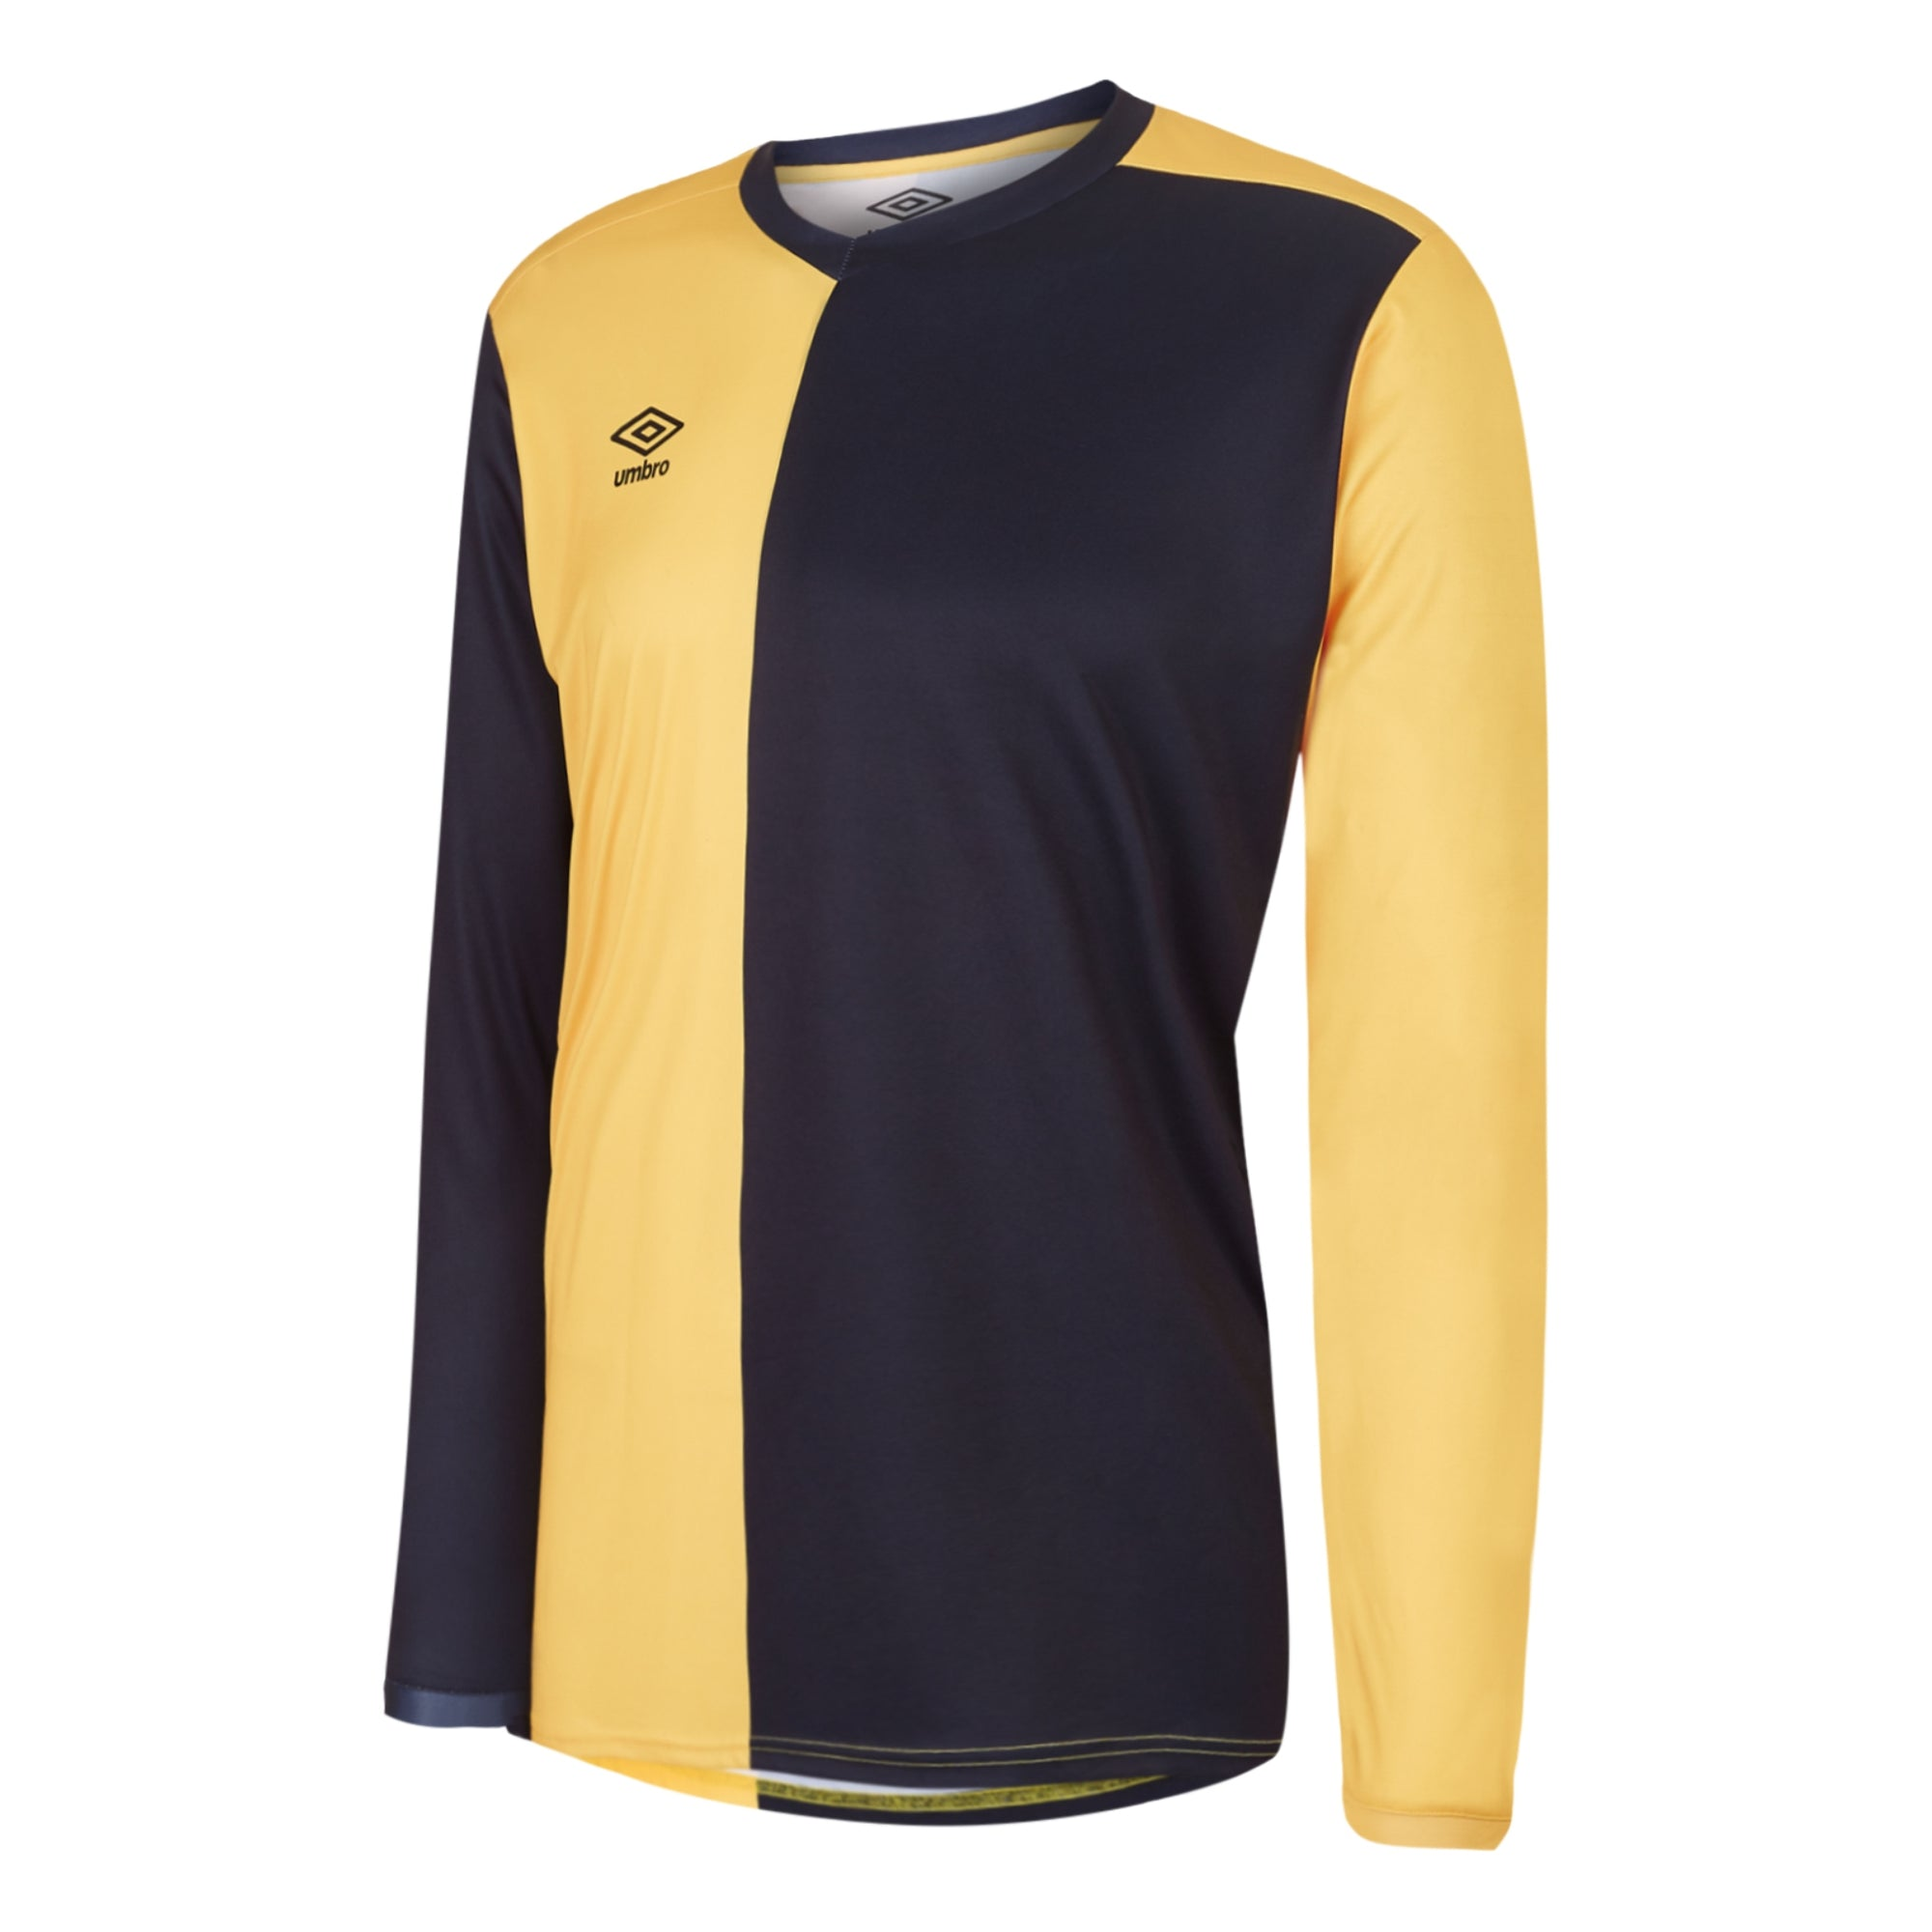 Umbro 50/50 LS Jersey - Yellow/Black